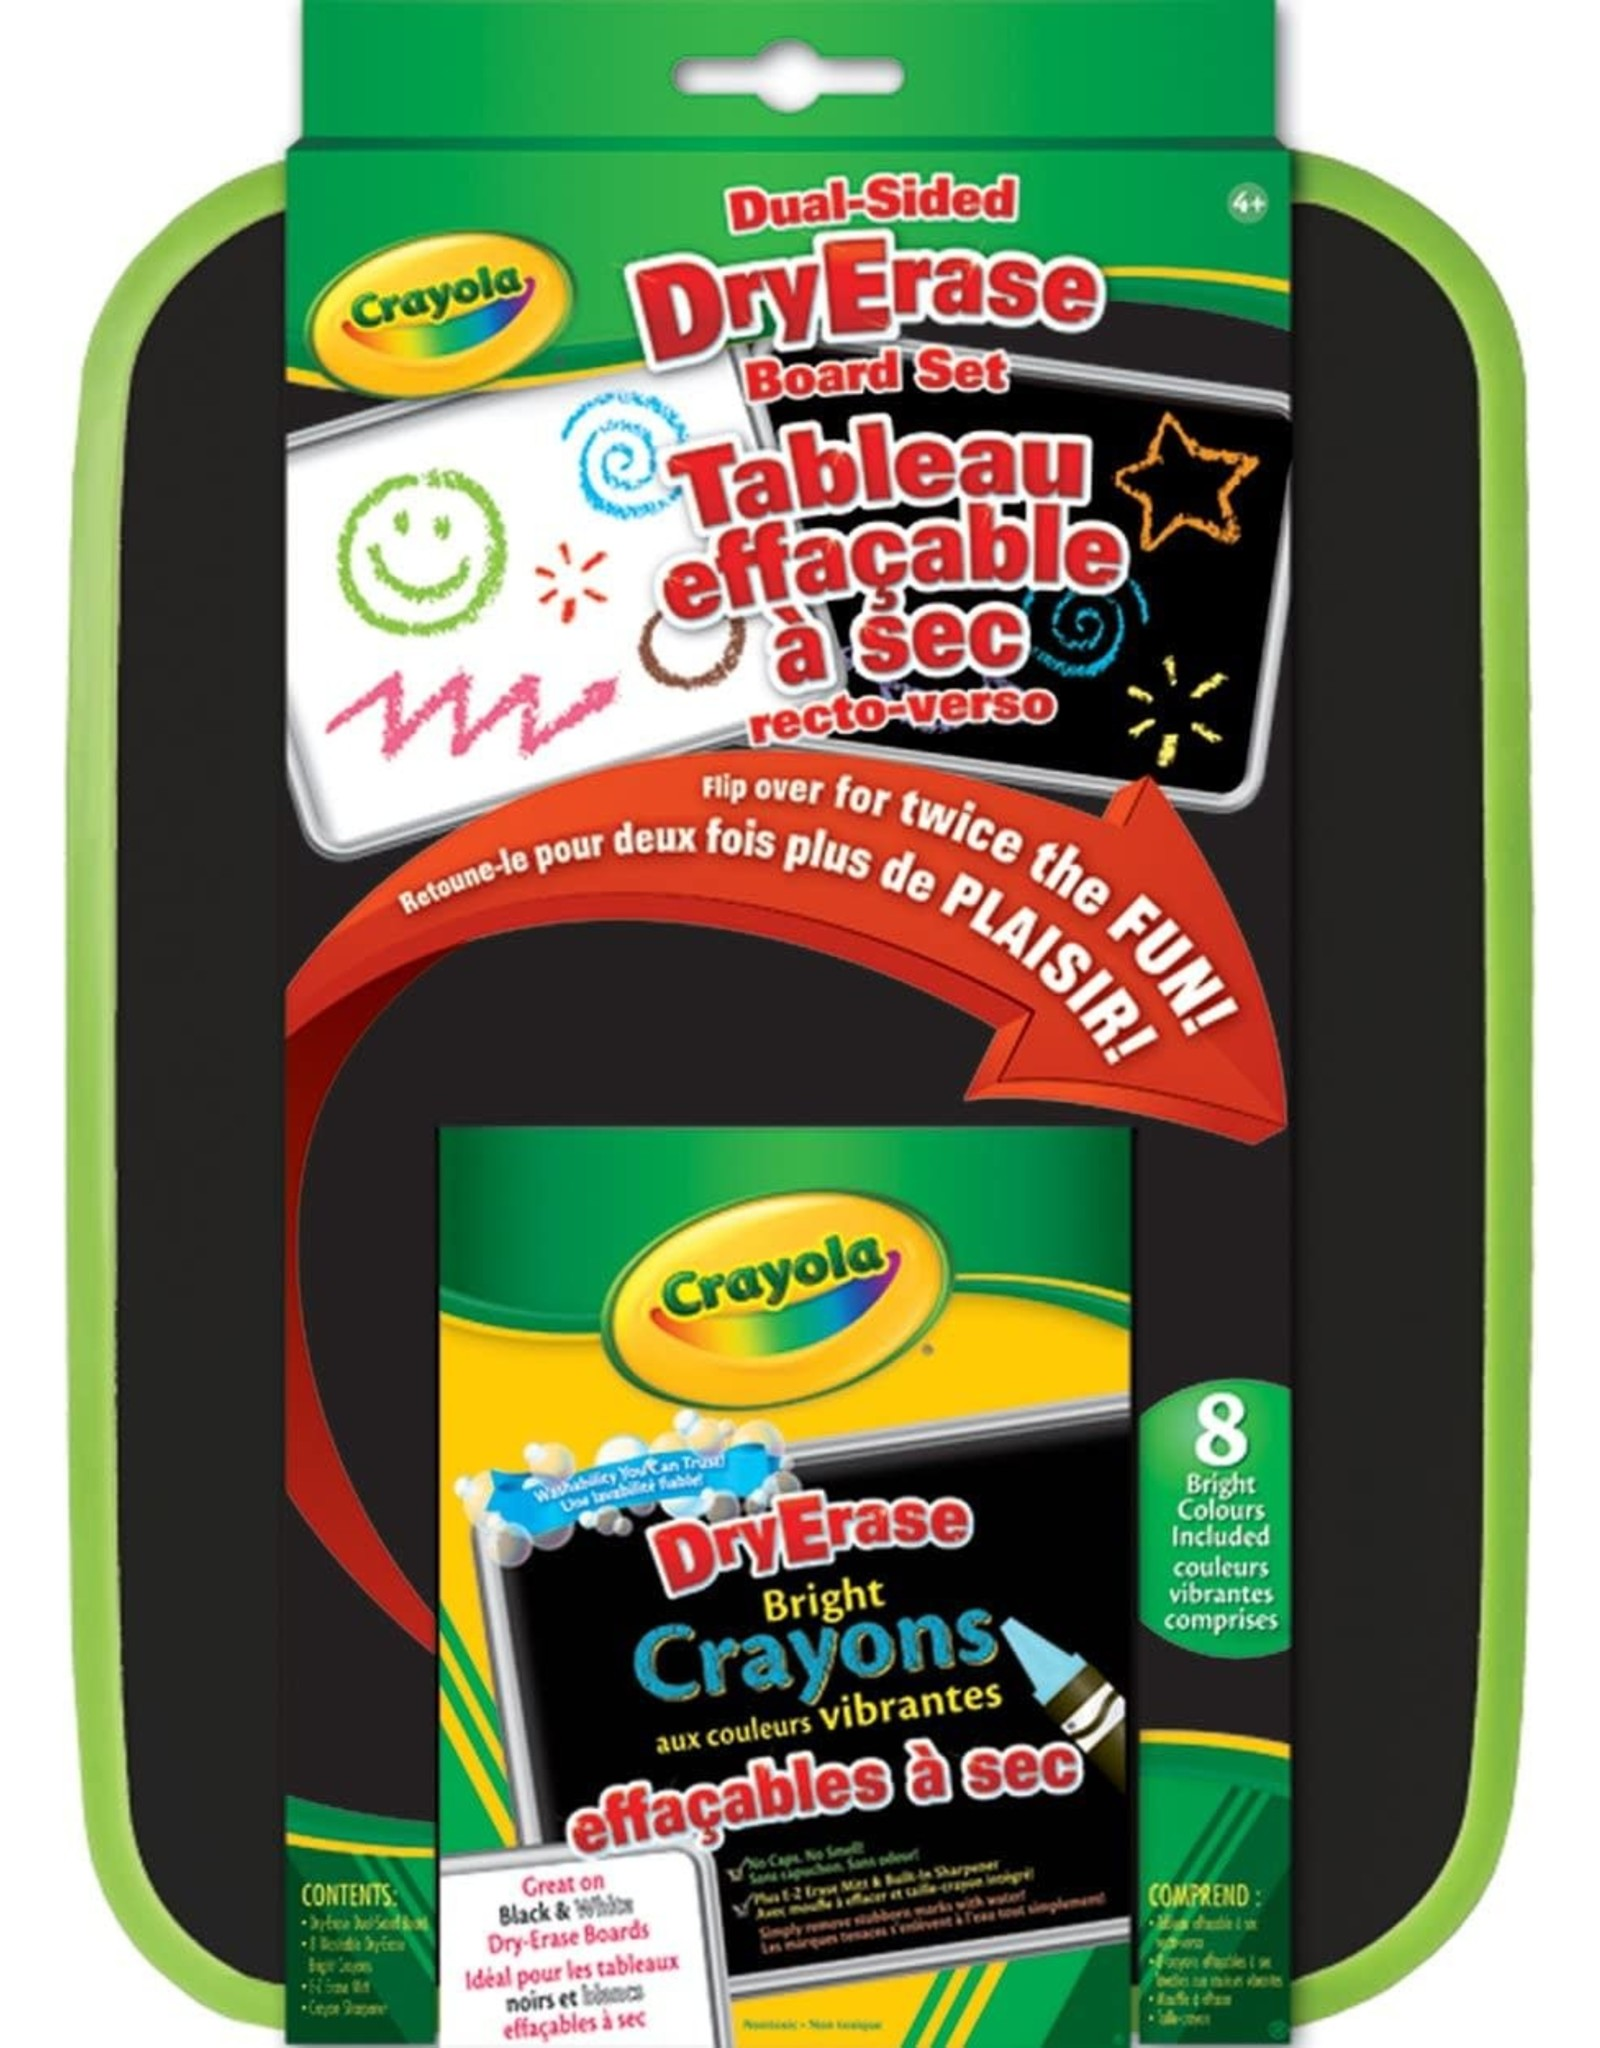 Crayola Dry-Erase Board Set, Dual Sided With Neon Crayons